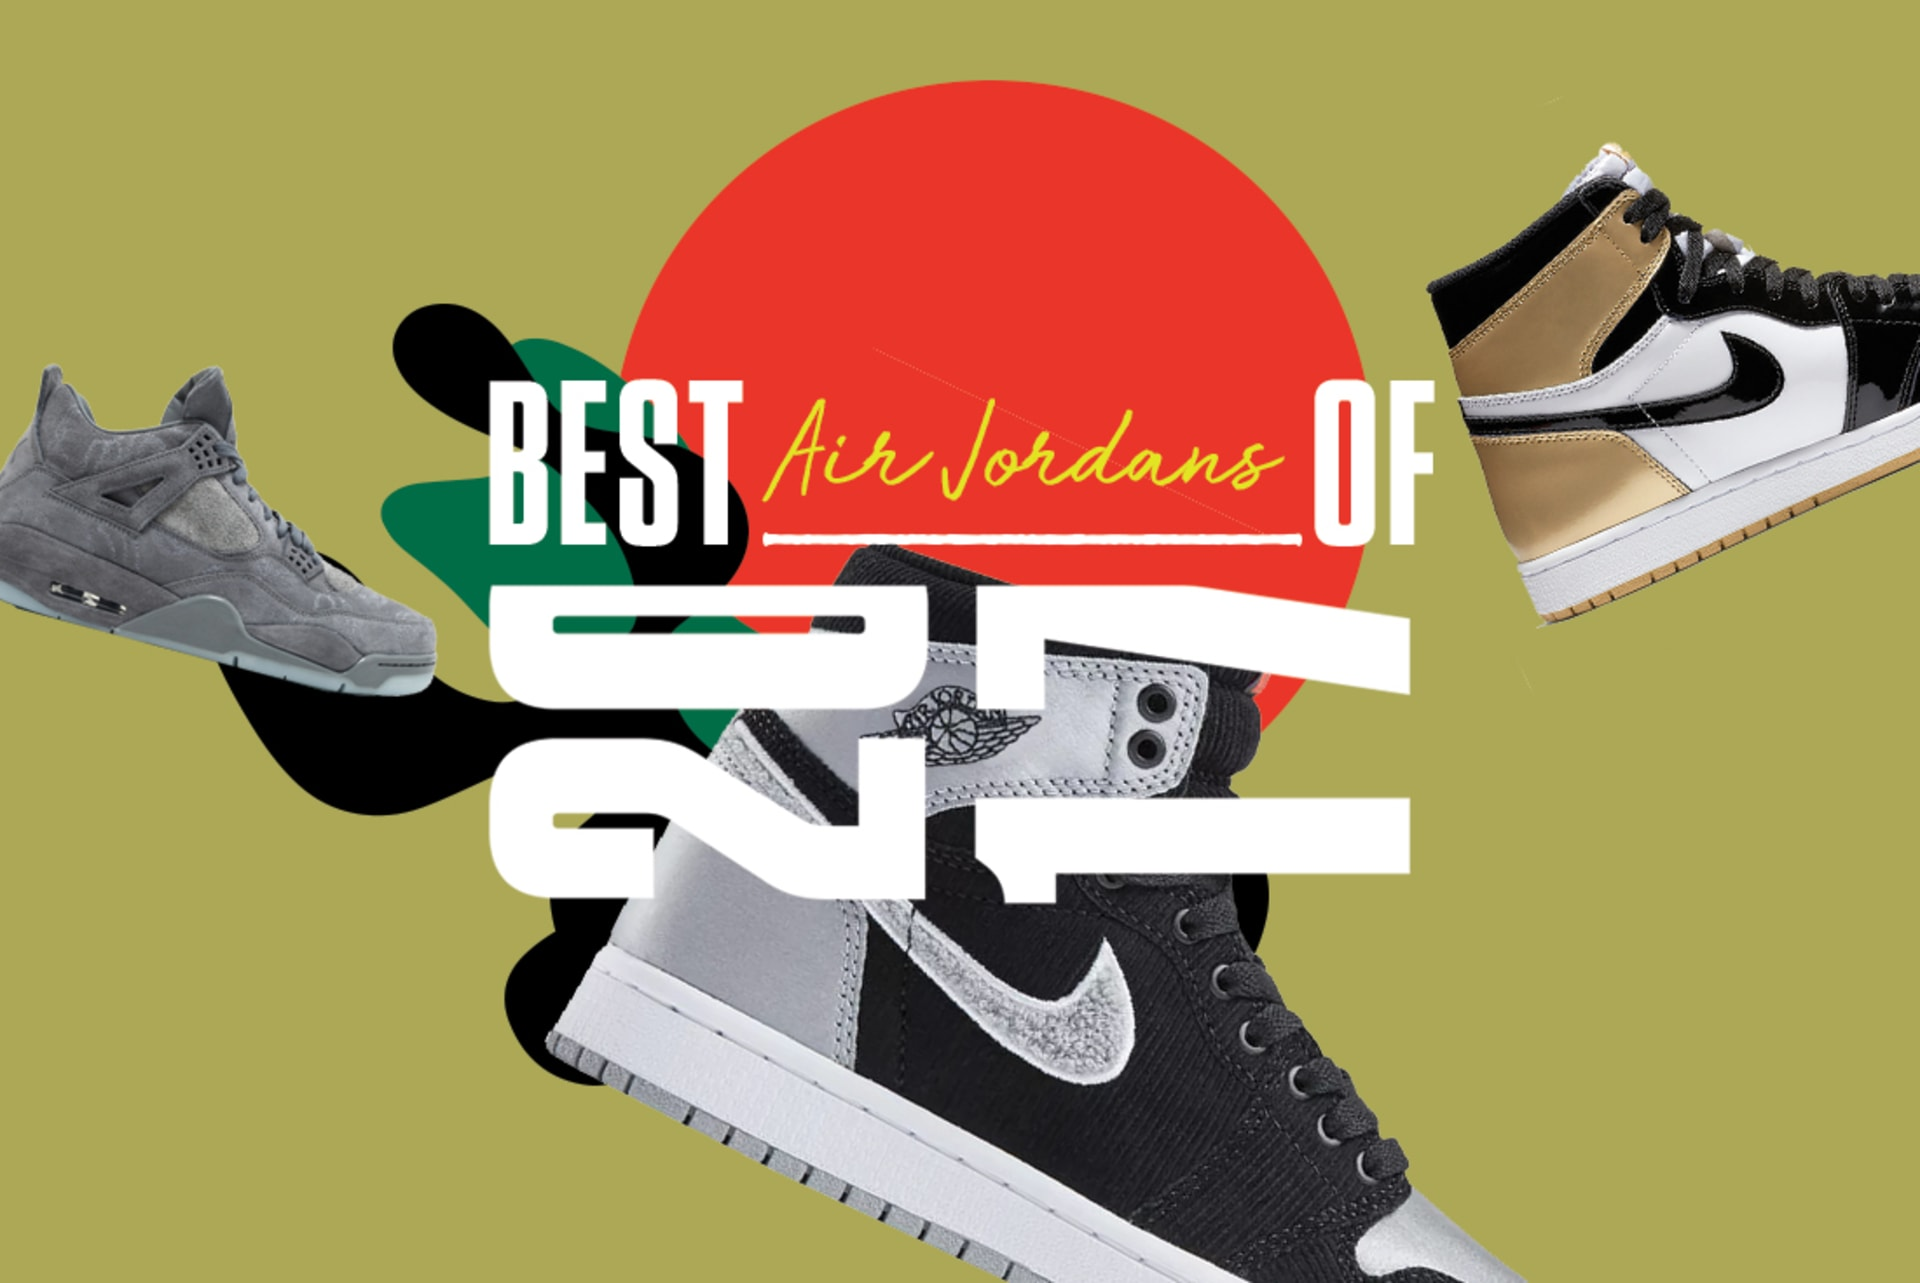 a6d165dbf1d8 Best Air Jordans 2017. Image via Complex Original